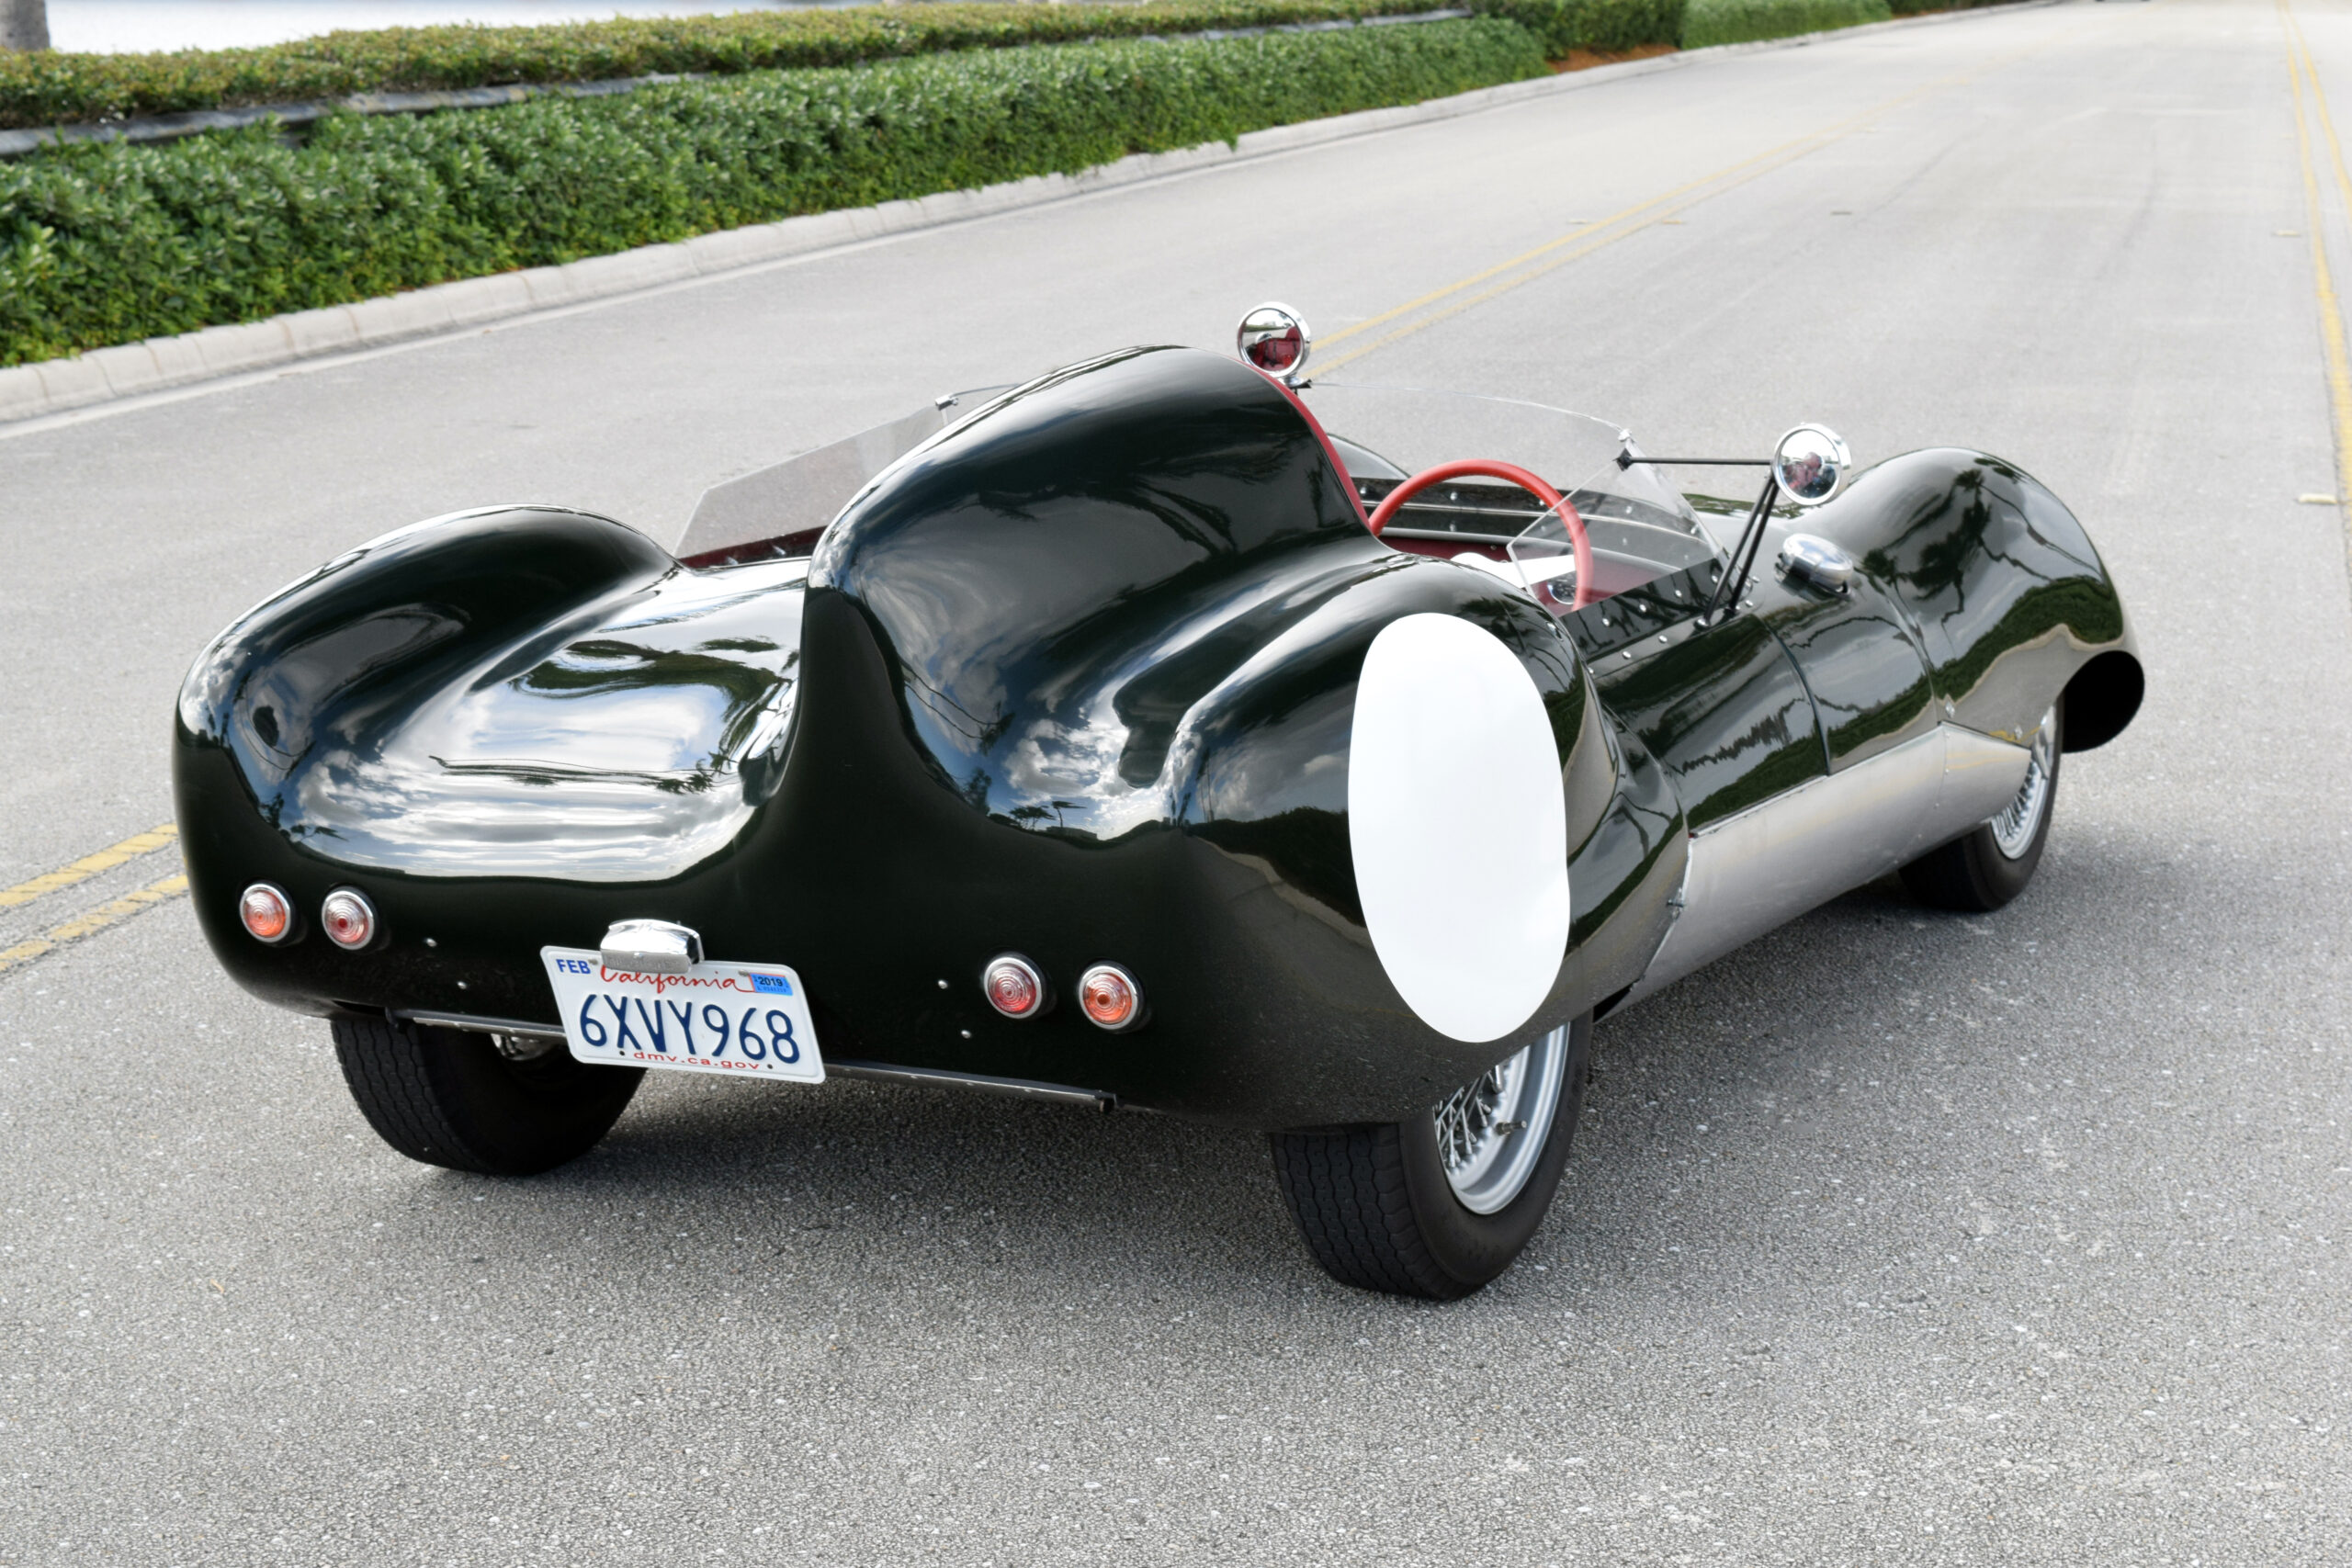 1970 Lotus Eleven Westfield tribute car, BMC 1380cc engine, 130HP, 5-speed, very fast